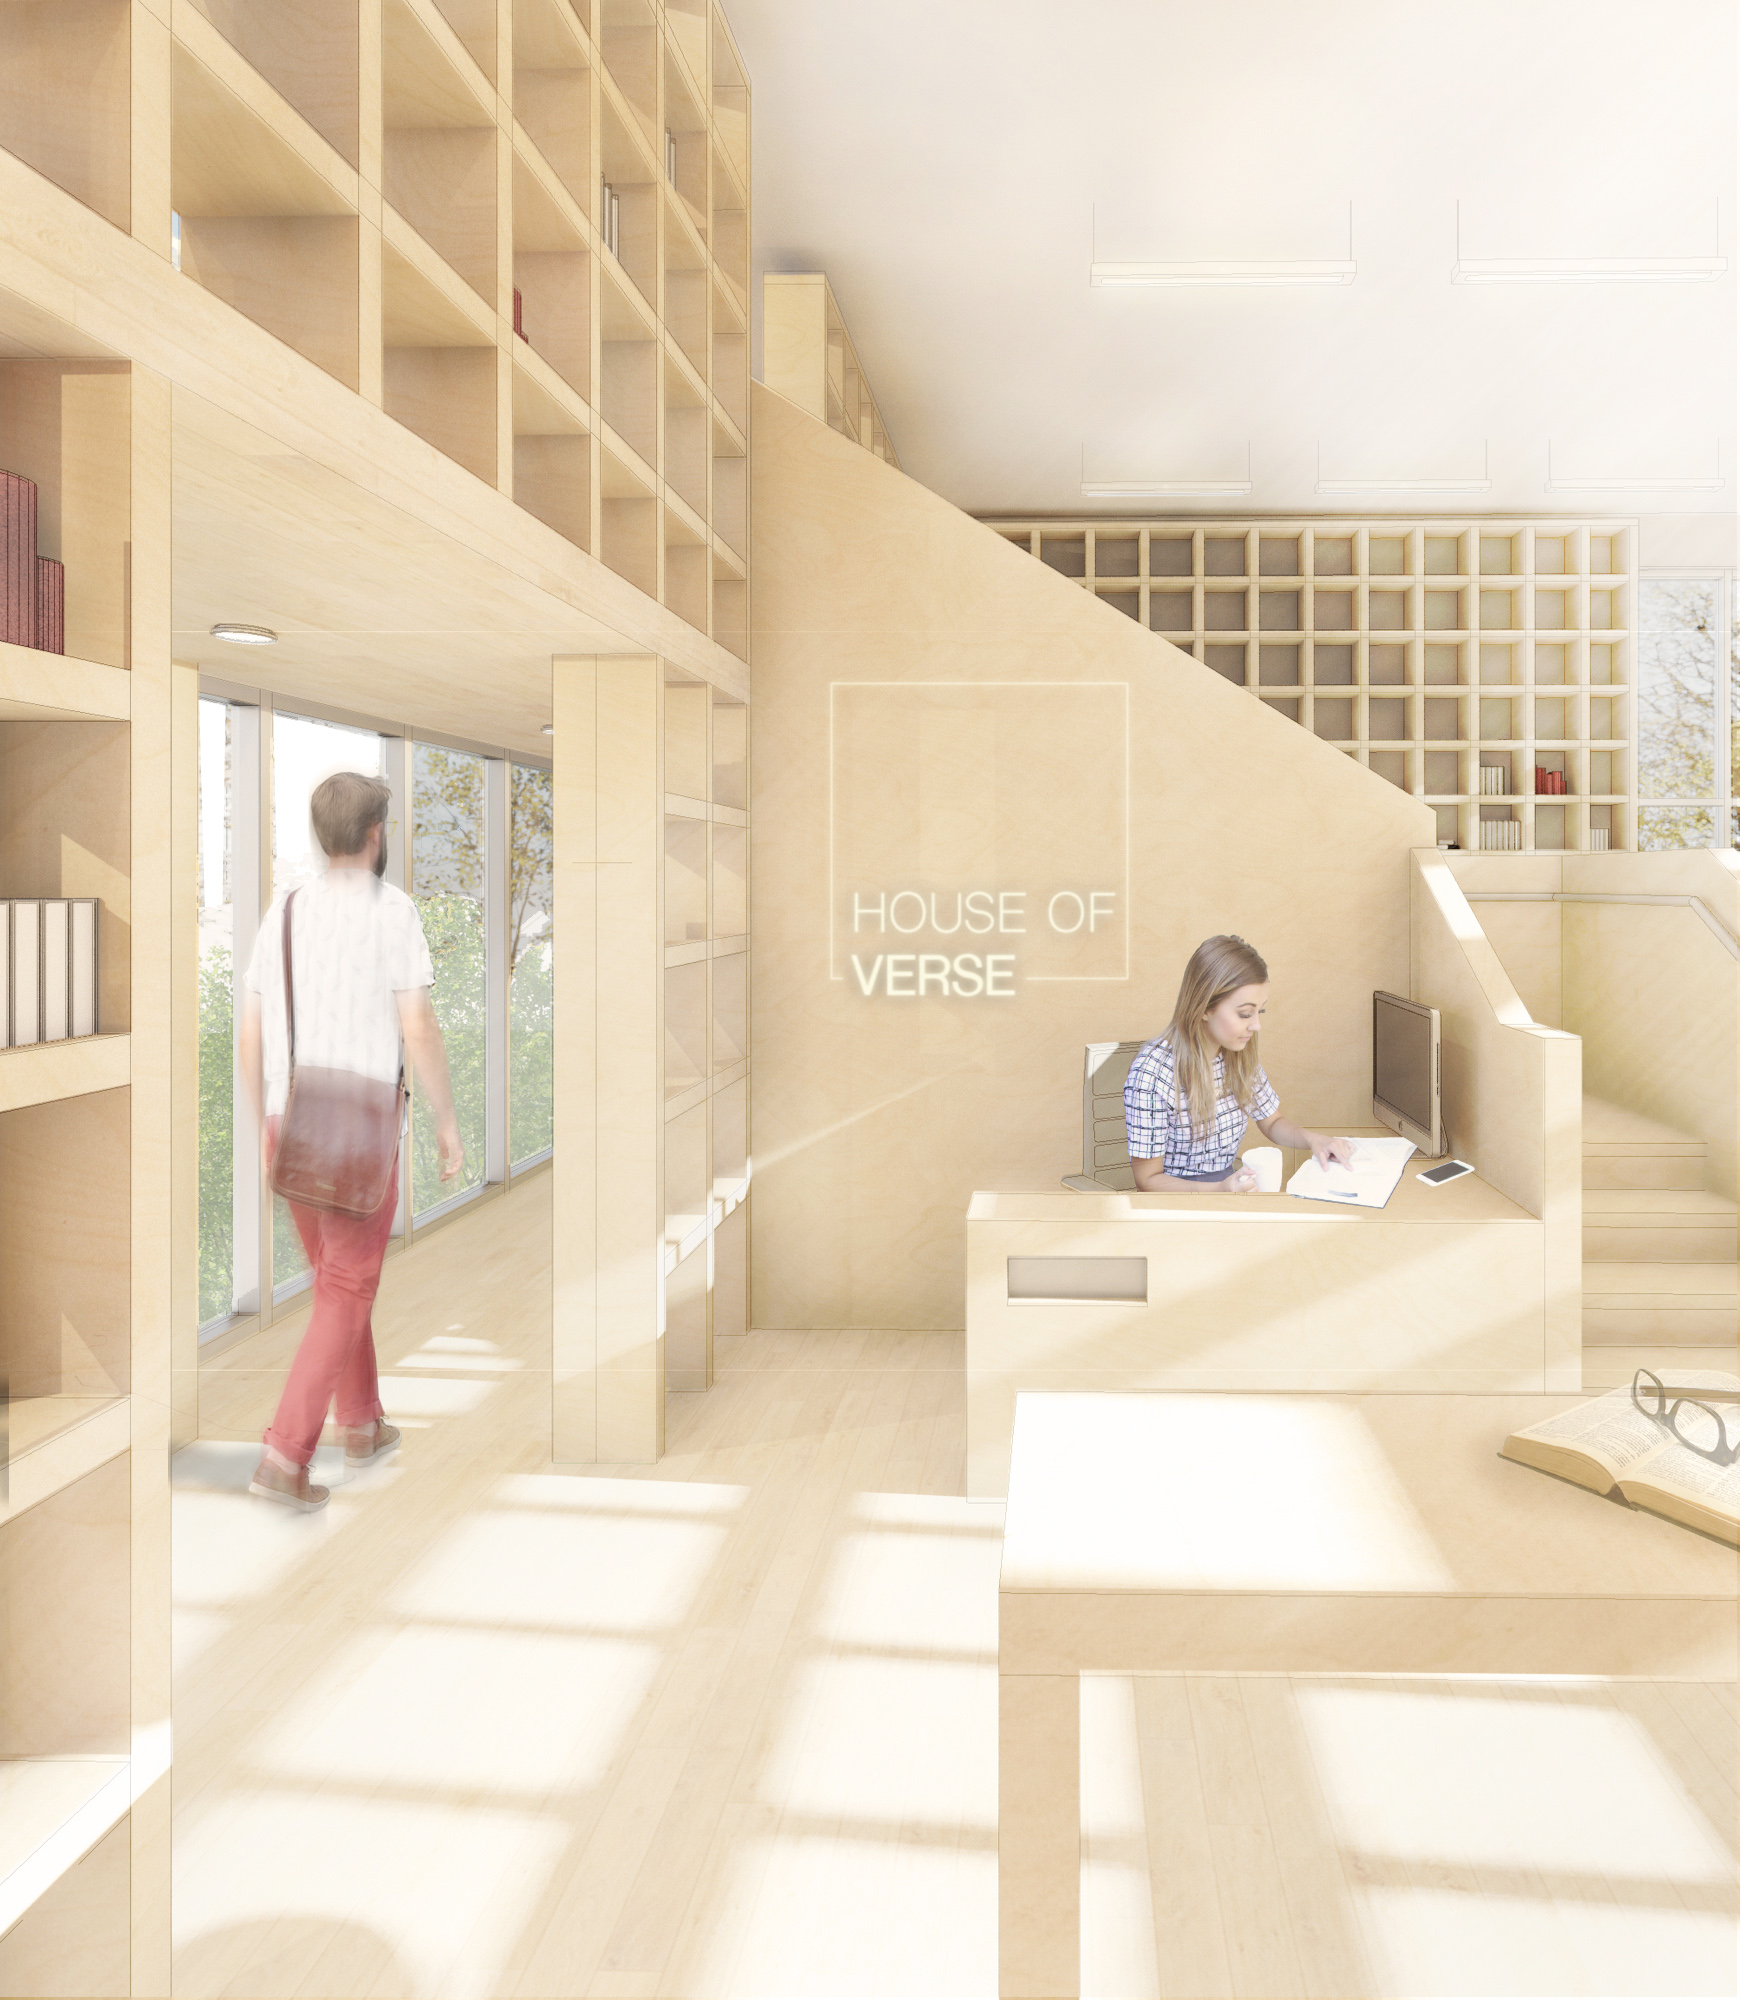 Interior Design Students Tie For First Place In Idec Student Design Competition School Of Architecture Design Virginia Tech